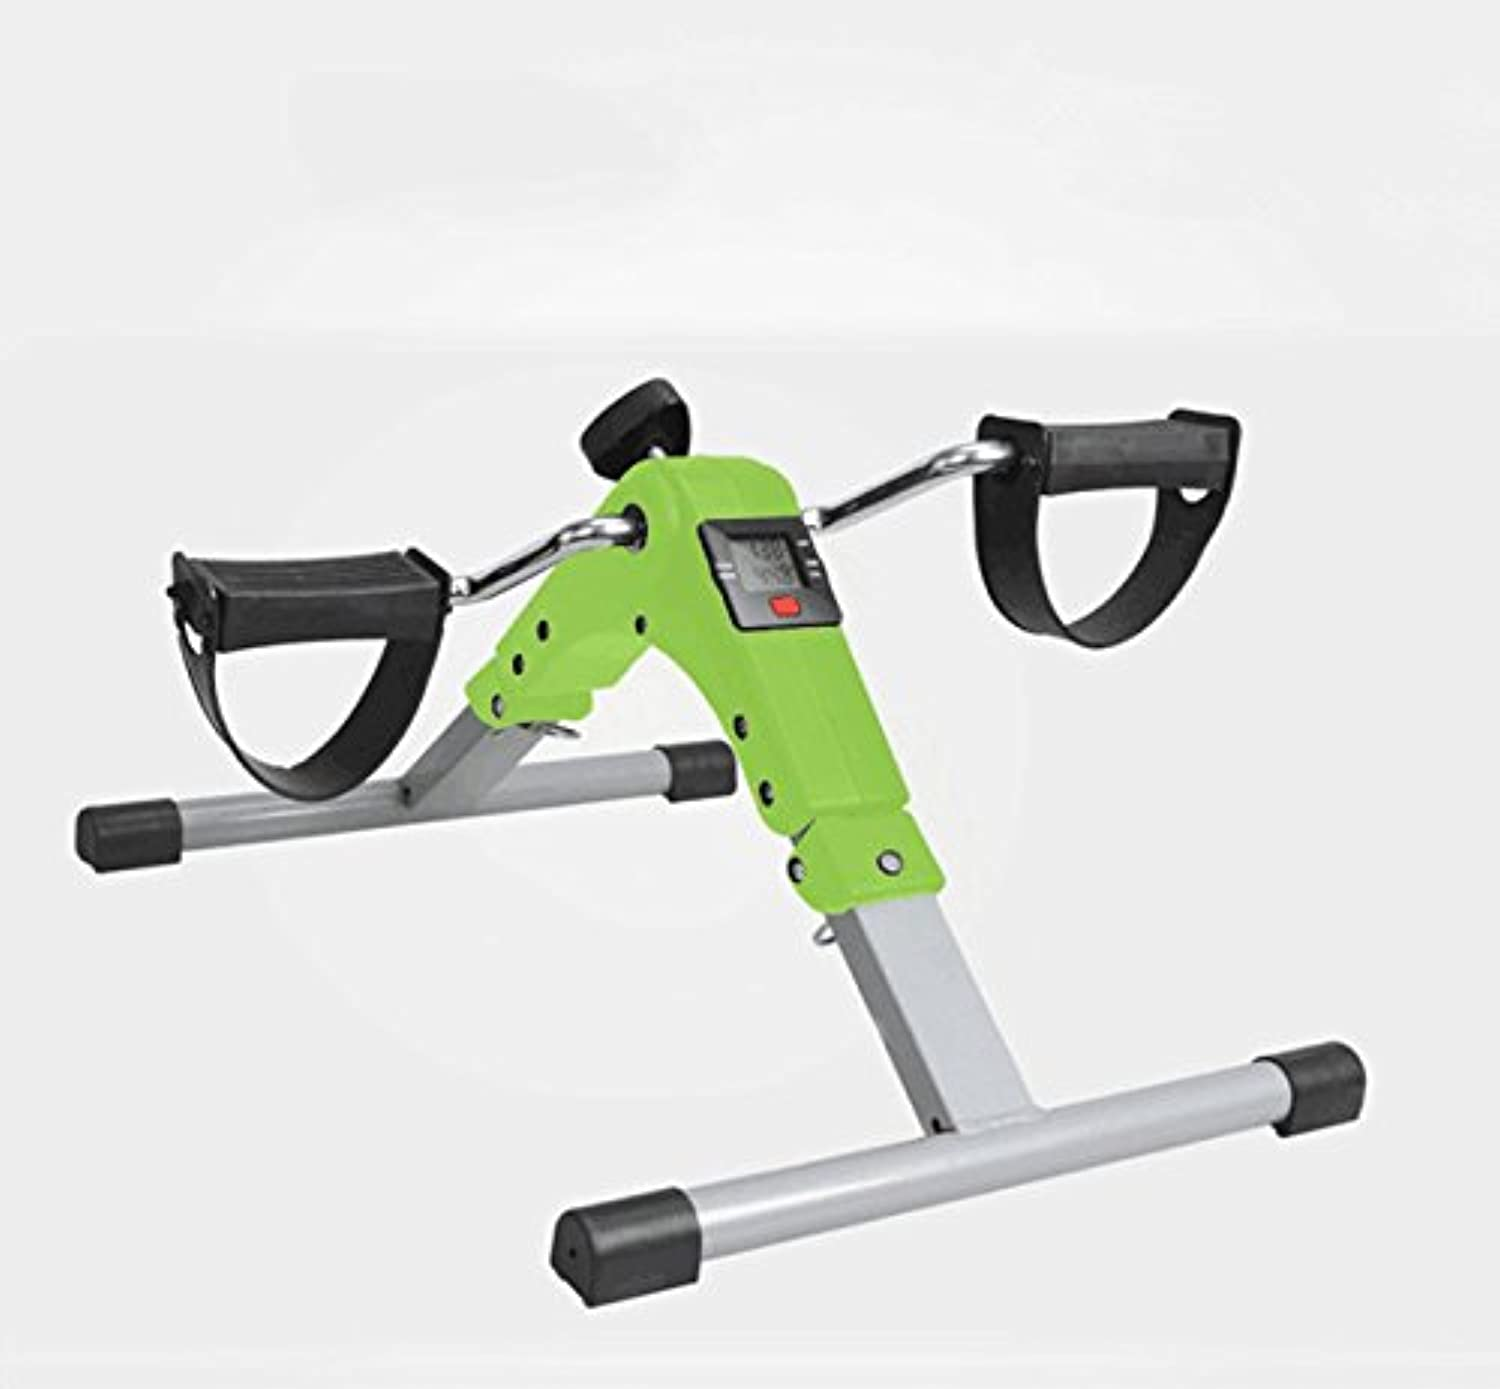 Olayer Leg Training Pedal Bicycle Rehabilitation Exercise Bikes Gym Indoor Sports Home Fitness Equipment